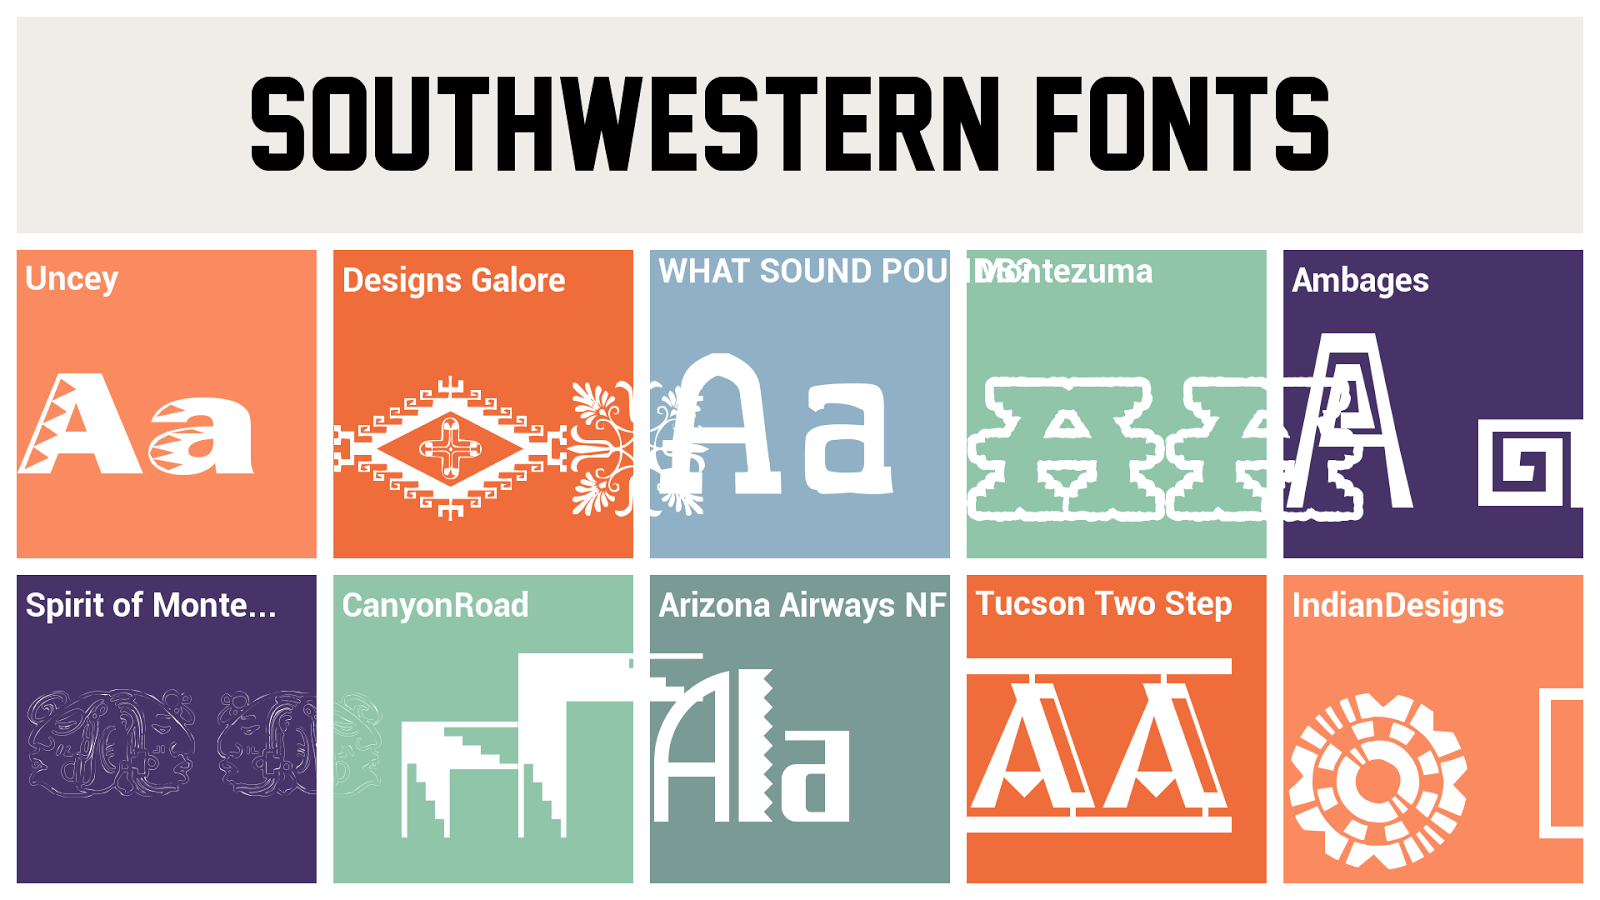 margaret shepherd calligraphy blog what makes it southwestern just a few of the many typefaces available that evoke the southwest source http font downloadatoz com free 13597 southwestern fonts html